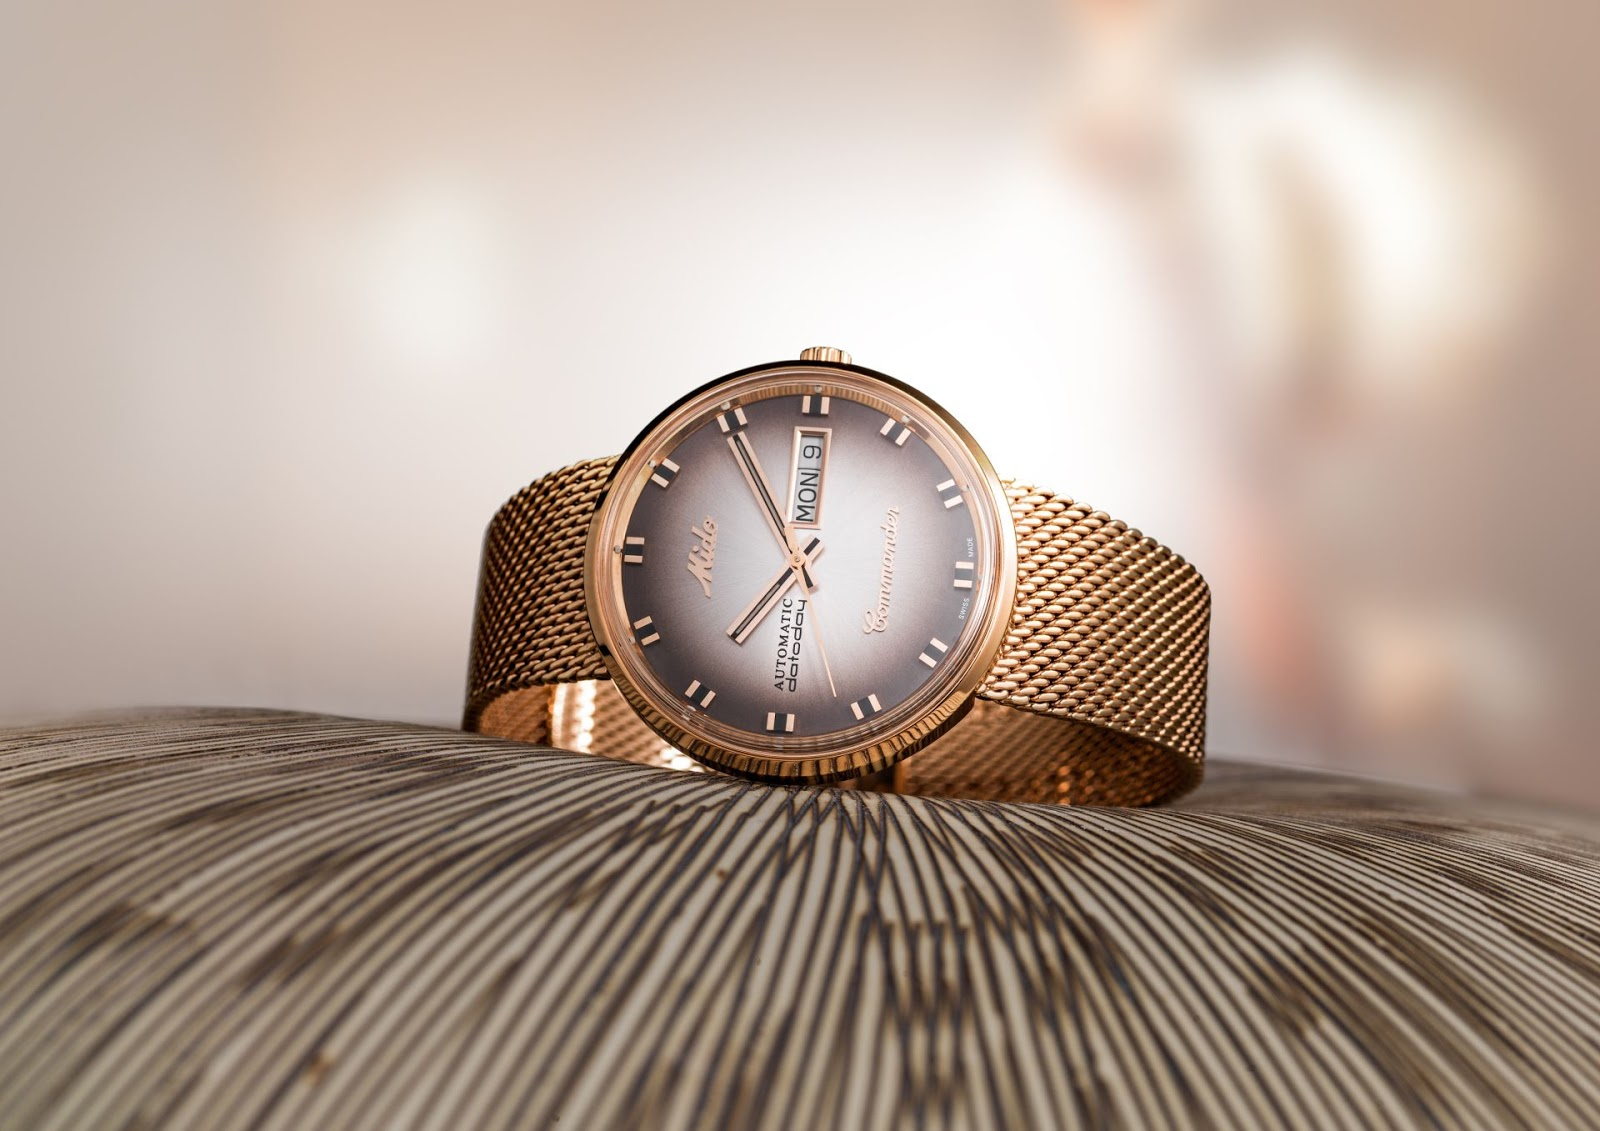 Mido commander shade special edition in rose gold pvd case for Commander rose